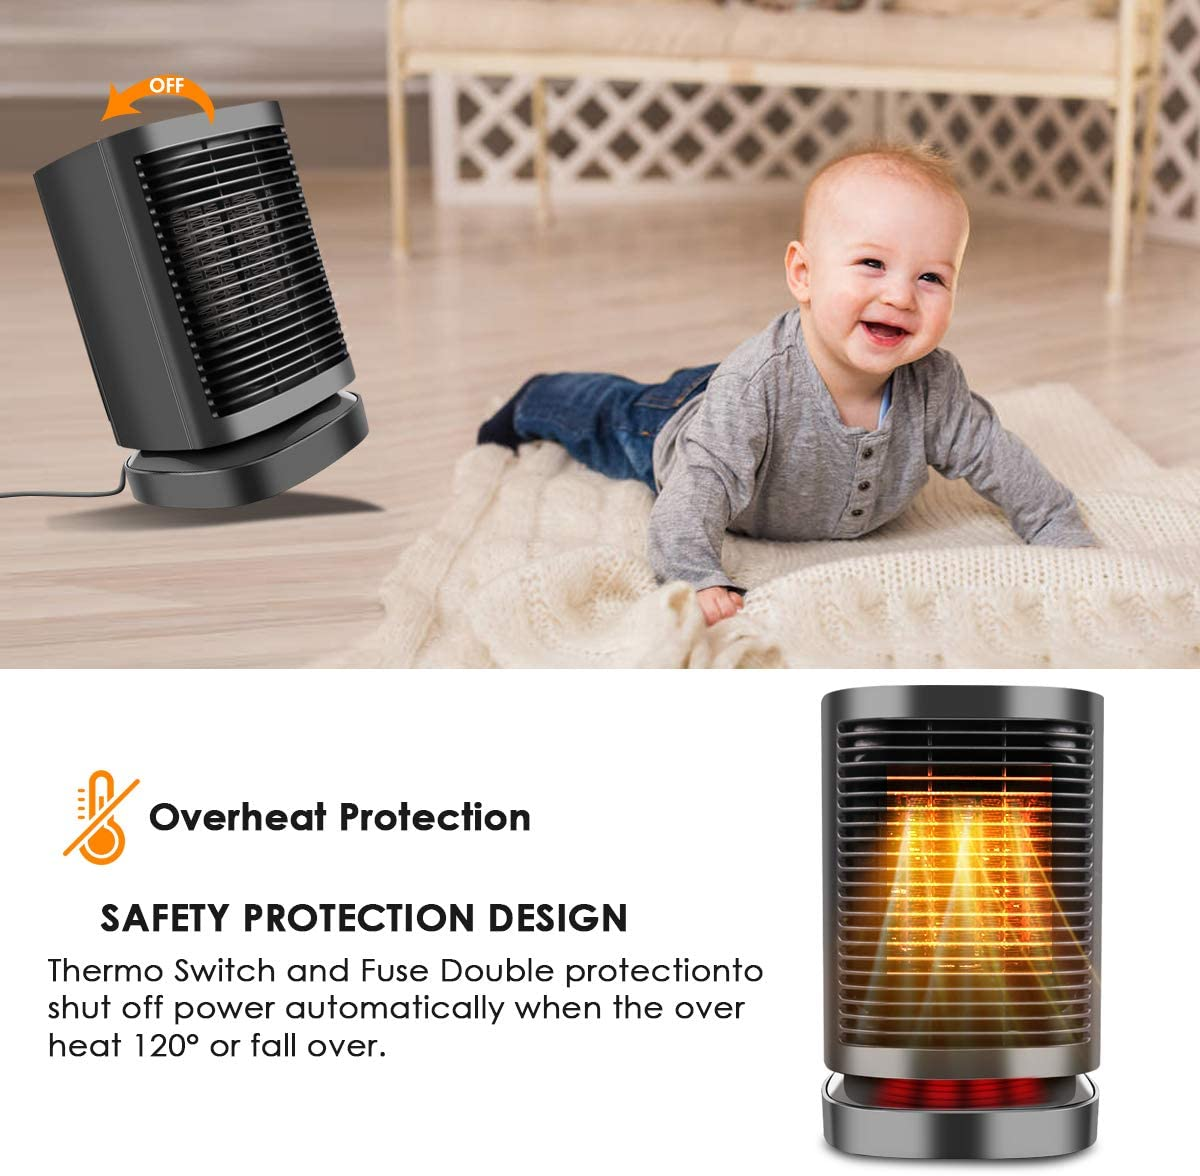 Personal Space Heater with Adjustable Thermostat Over-Heat /& Tilt Protection Fast Heating KoolaMo Space Heater Perfect for Home or Office Portable 950W Mini Oscillating Ceramic Electric Heater